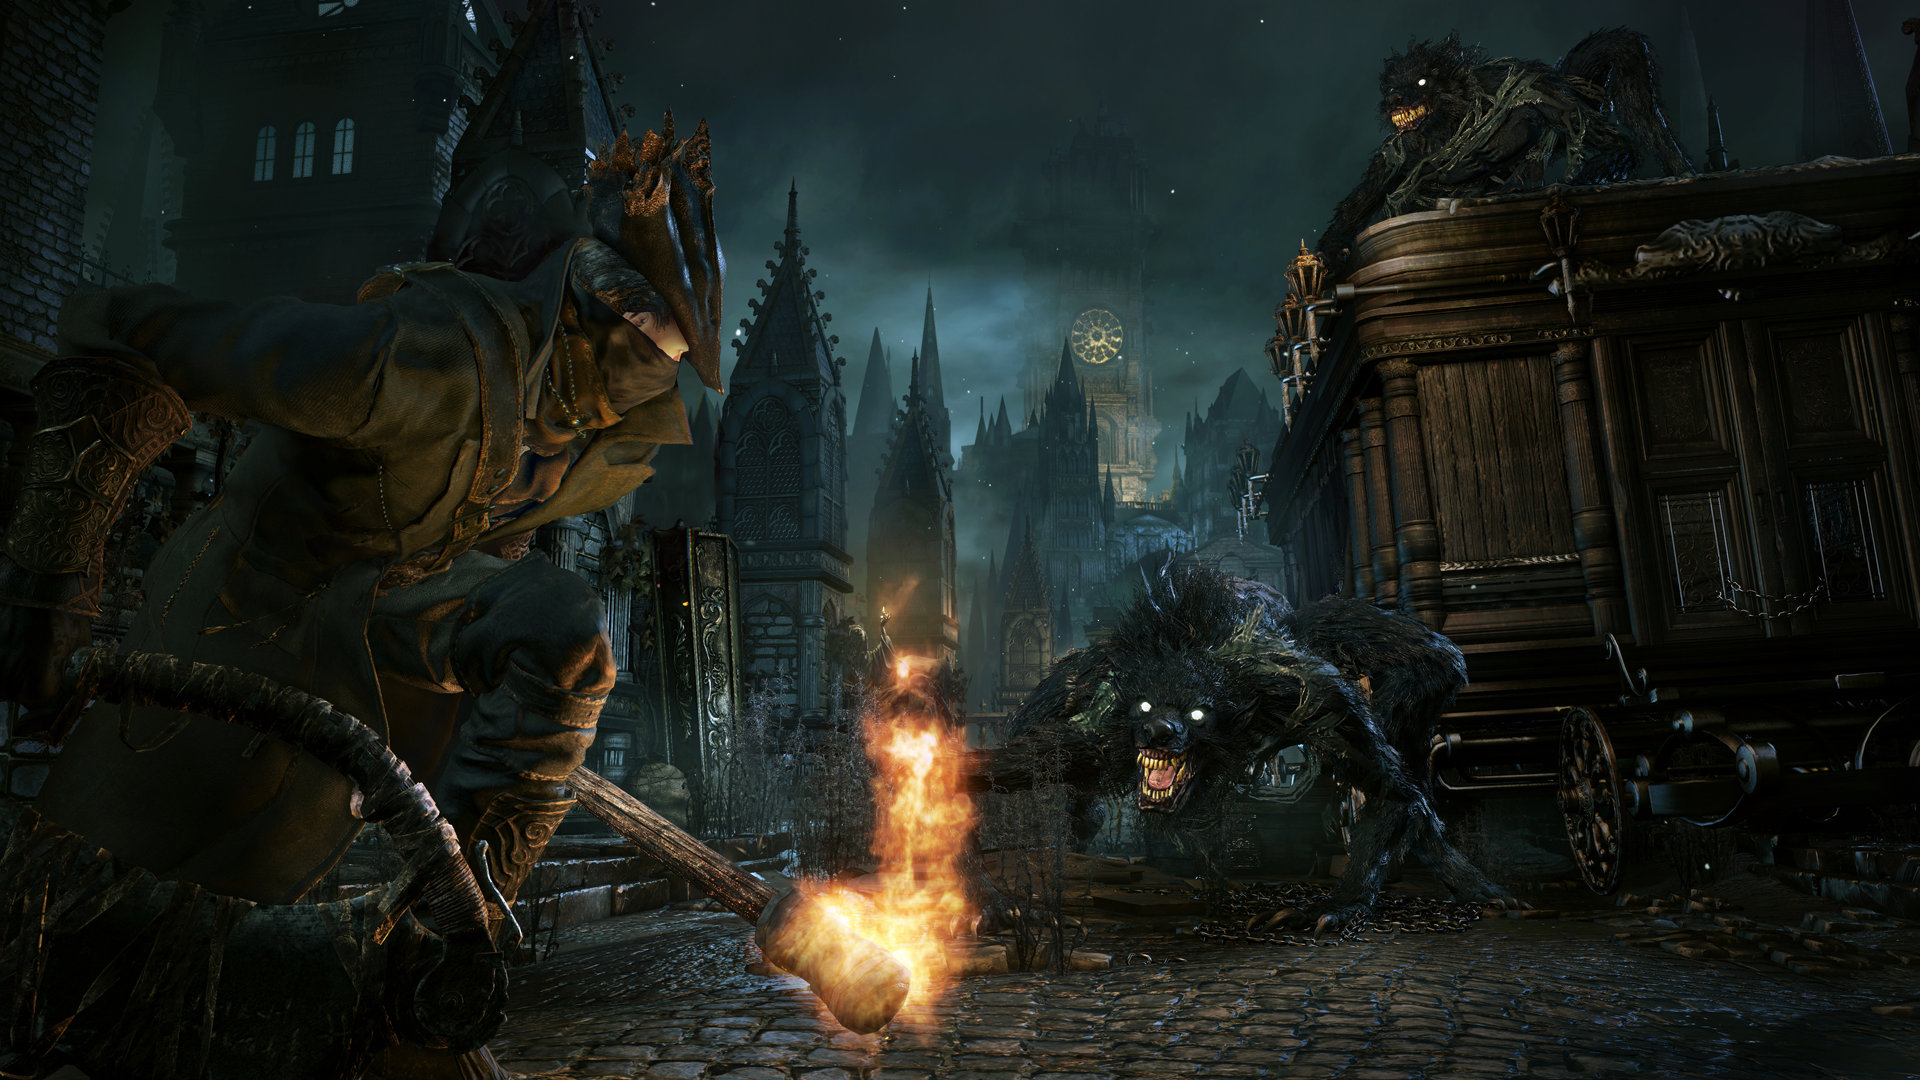 Bloodborne is getting an expansion via DLC